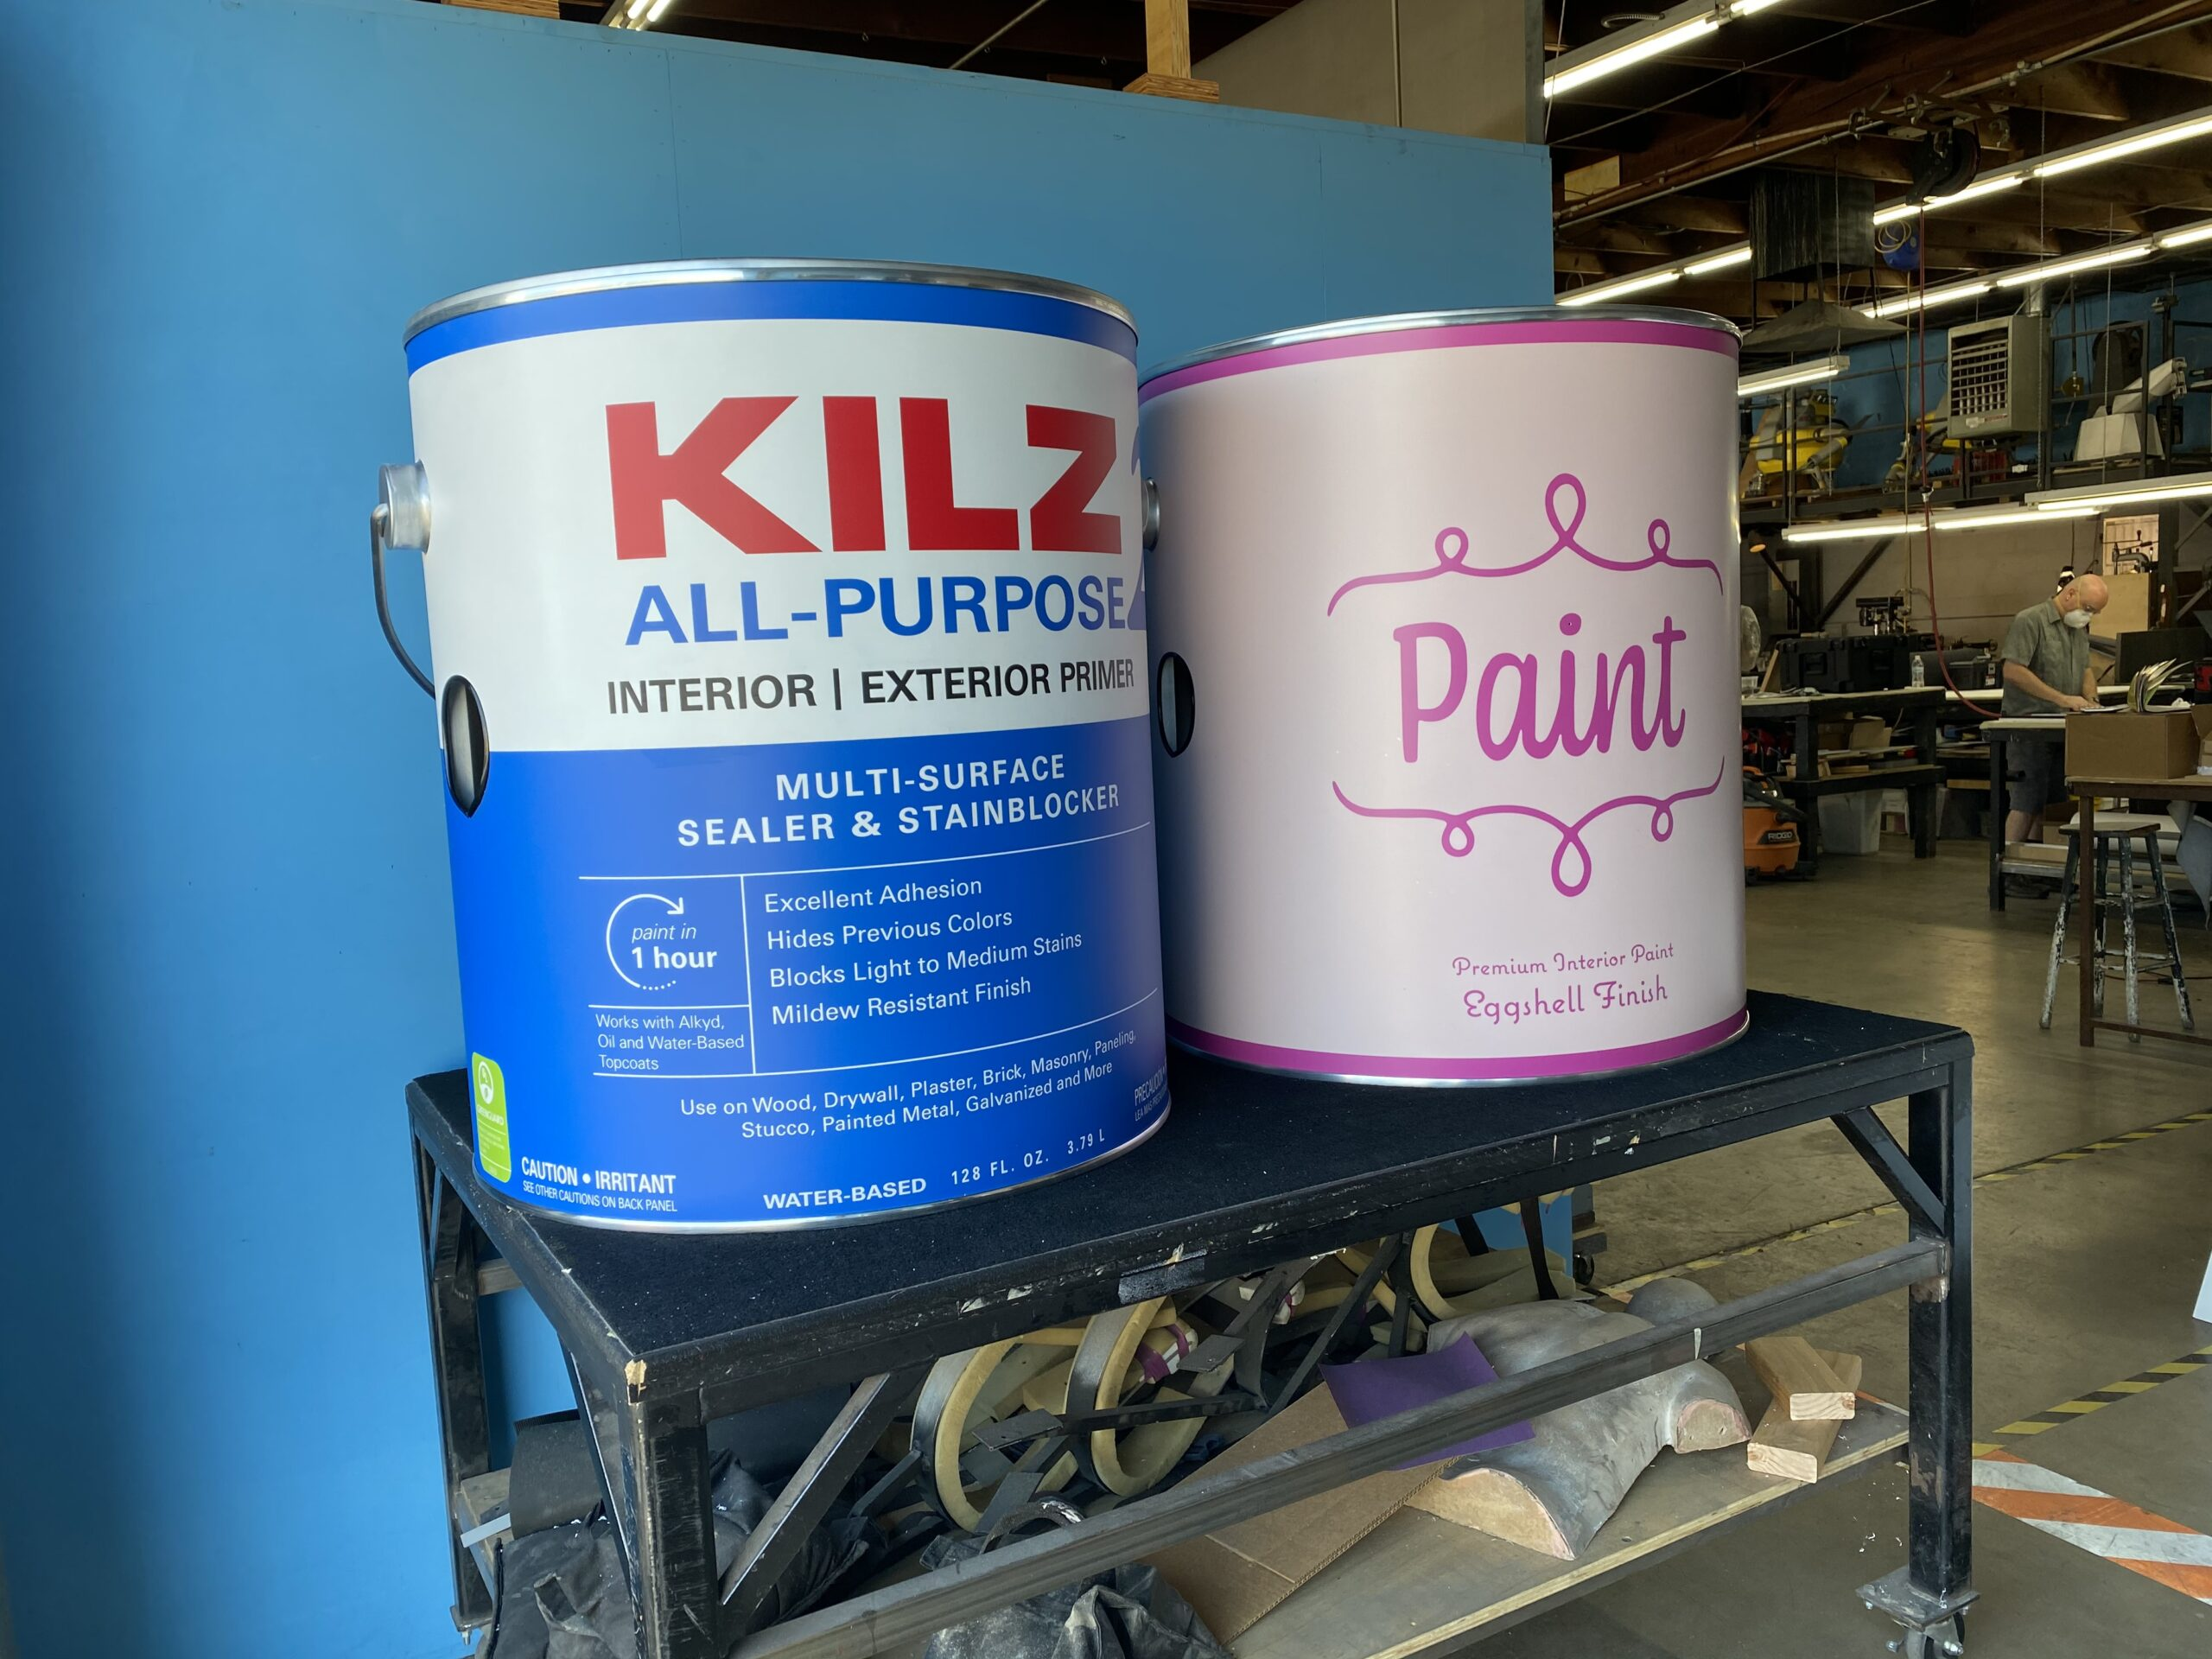 Custom Paint Cans: Design, CNC Milling, Metal Fabrication, Carpentry, Vacuforming, Flat Bed Printing, Model Making & Lamination.